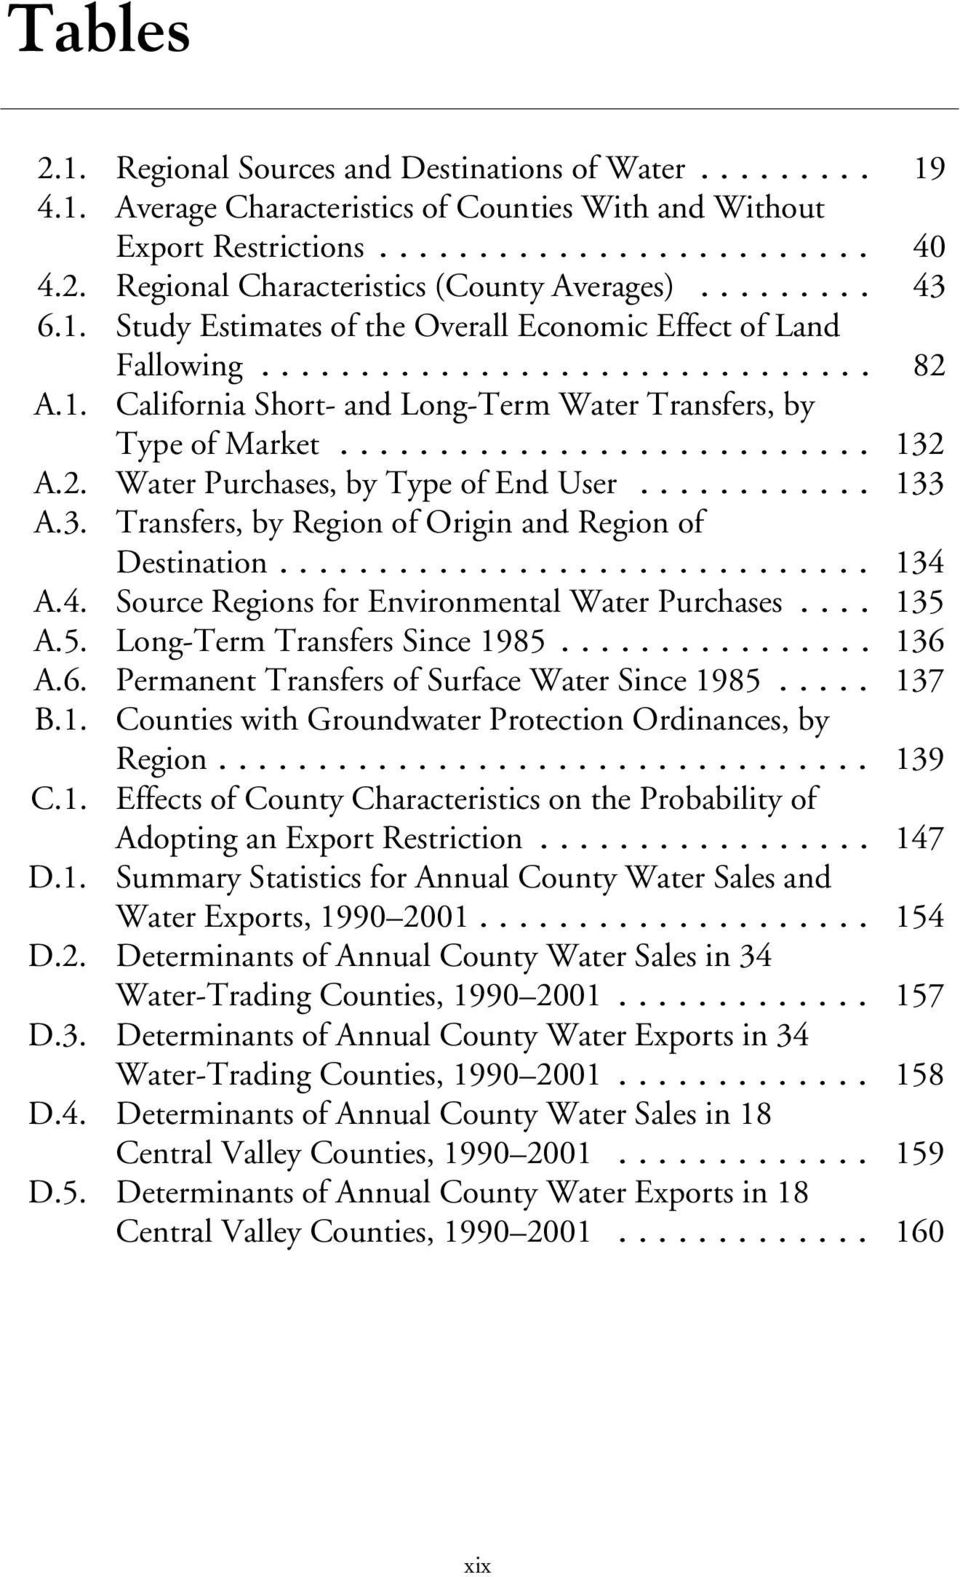 .. 133 A.3. Transfers, by Region of Origin and Region of Destination... 134 A.4. Source Regions for Environmental Water Purchases... 135 A.5. Long-Term Transfers Since 1985... 136